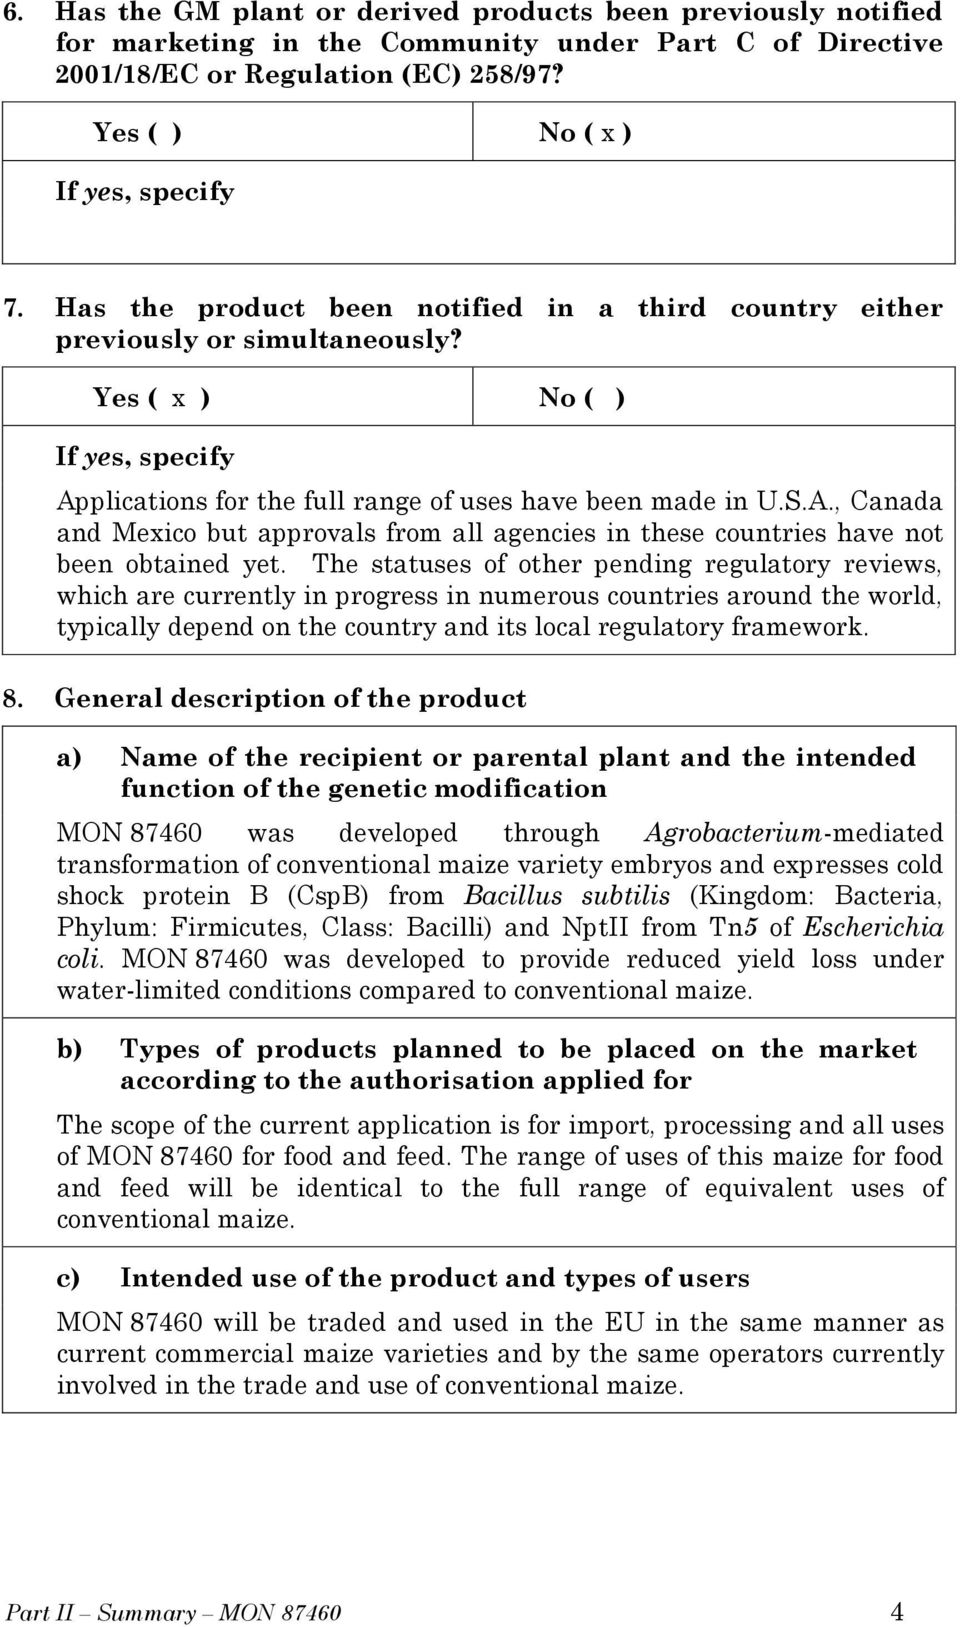 plications for the full range of uses have been made in U.S.A., Canada and Mexico but approvals from all agencies in these countries have not been obtained yet.